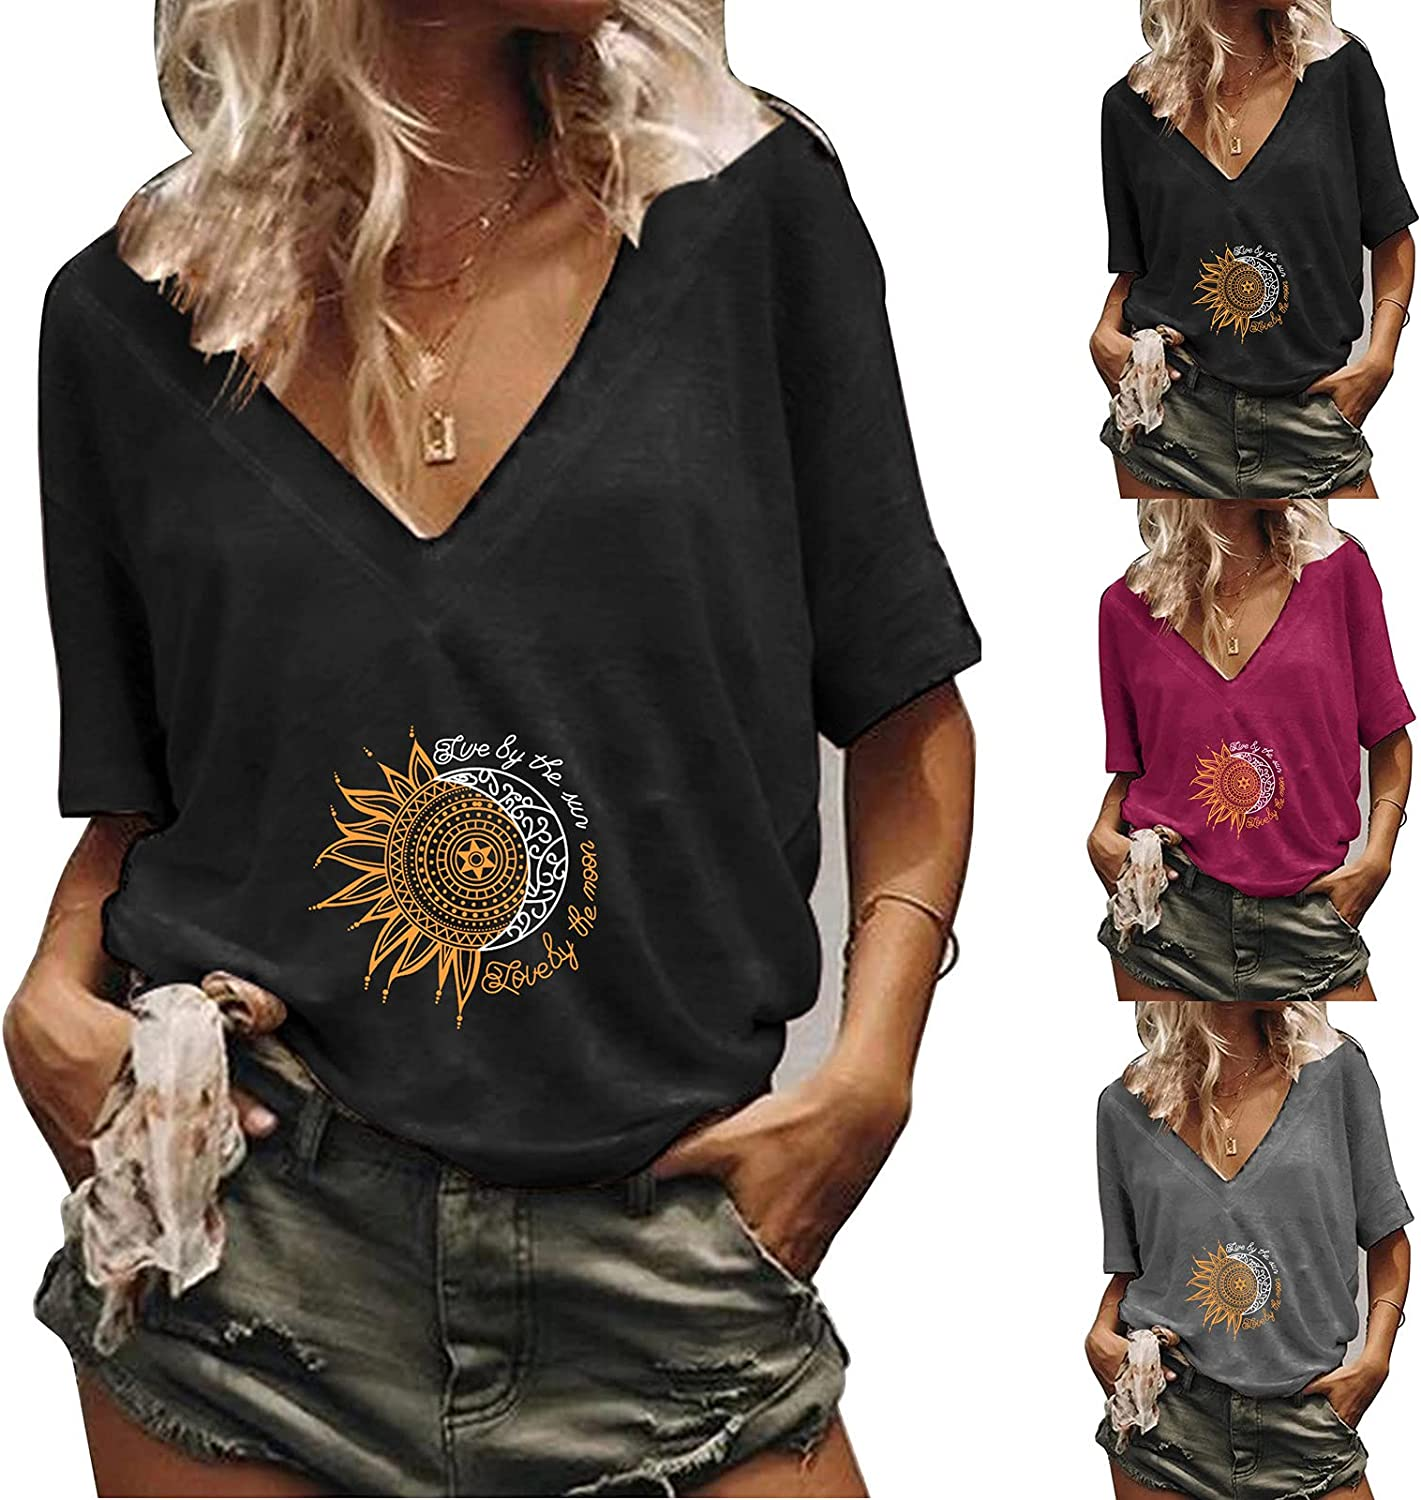 Flurries Plus Size Tops for Women Fashion Shirt V-Neck Soft Casual Top Summer Sexy Womens Tunic Vest Sleeveless